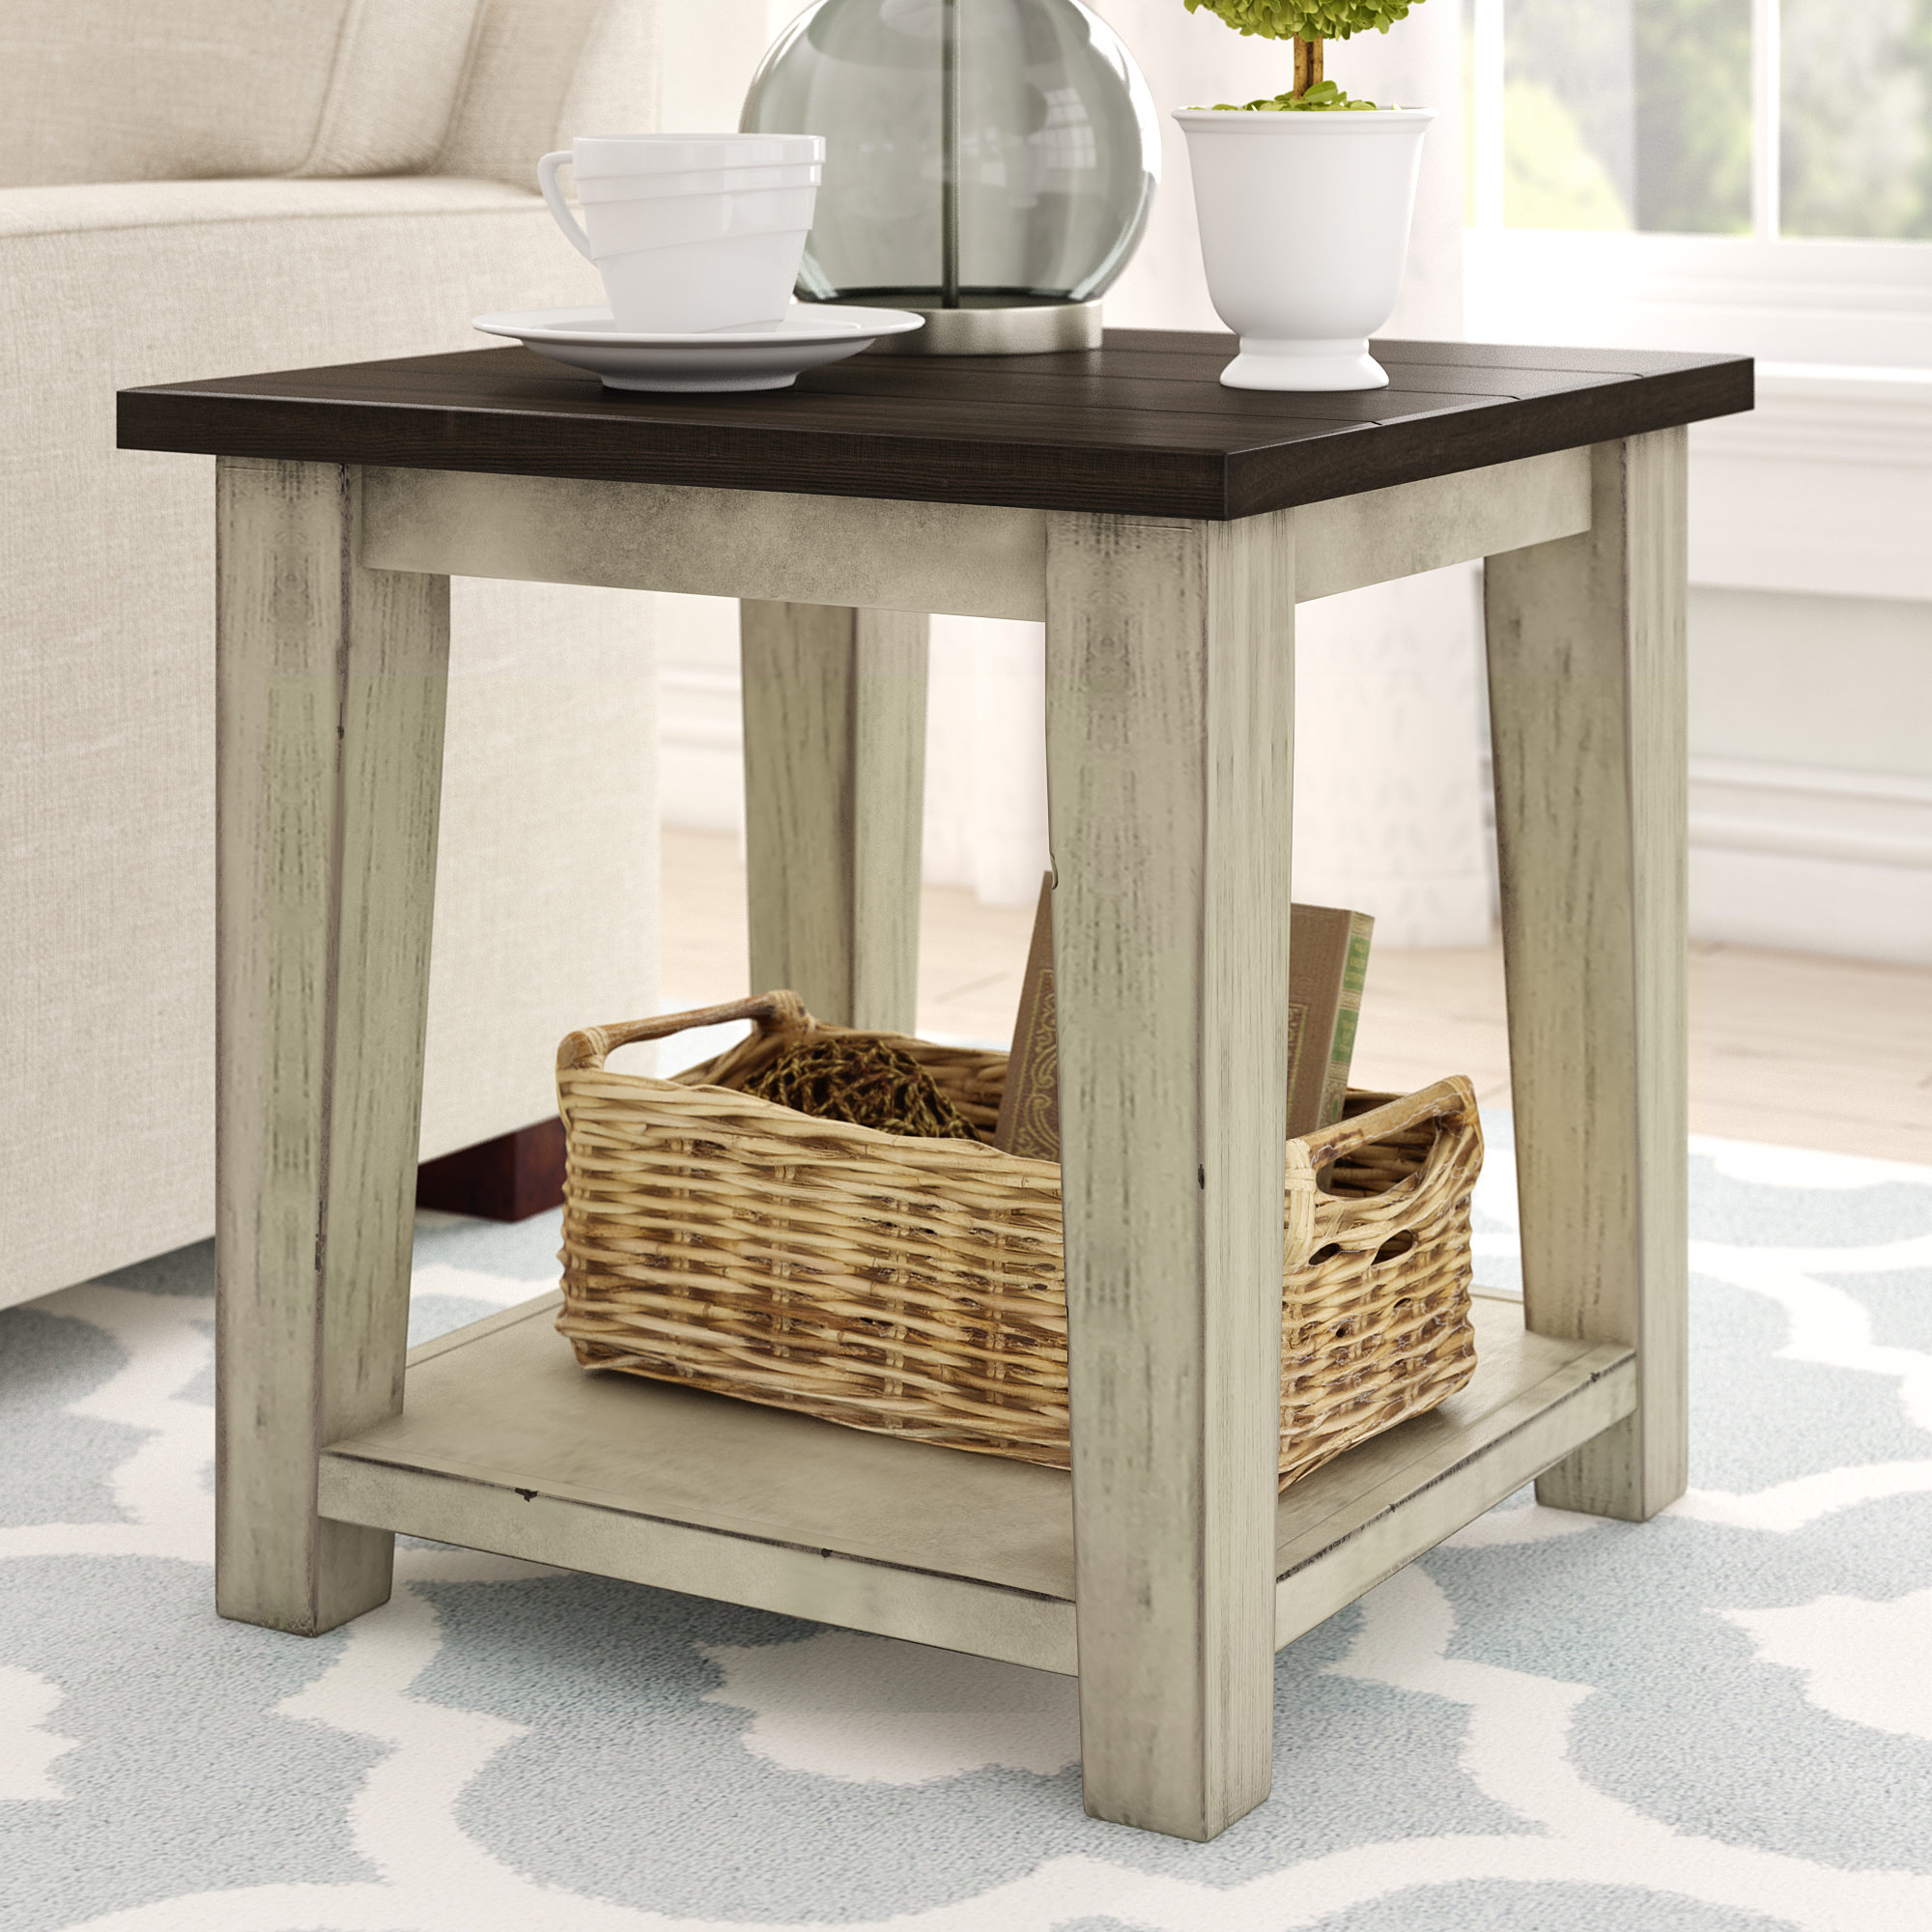 pie shaped end table lexie ifrane accent winsome with drawer barn door entry bar height for tennis whole lighting fixtures nautical light indoor clearance bedding linens awesome